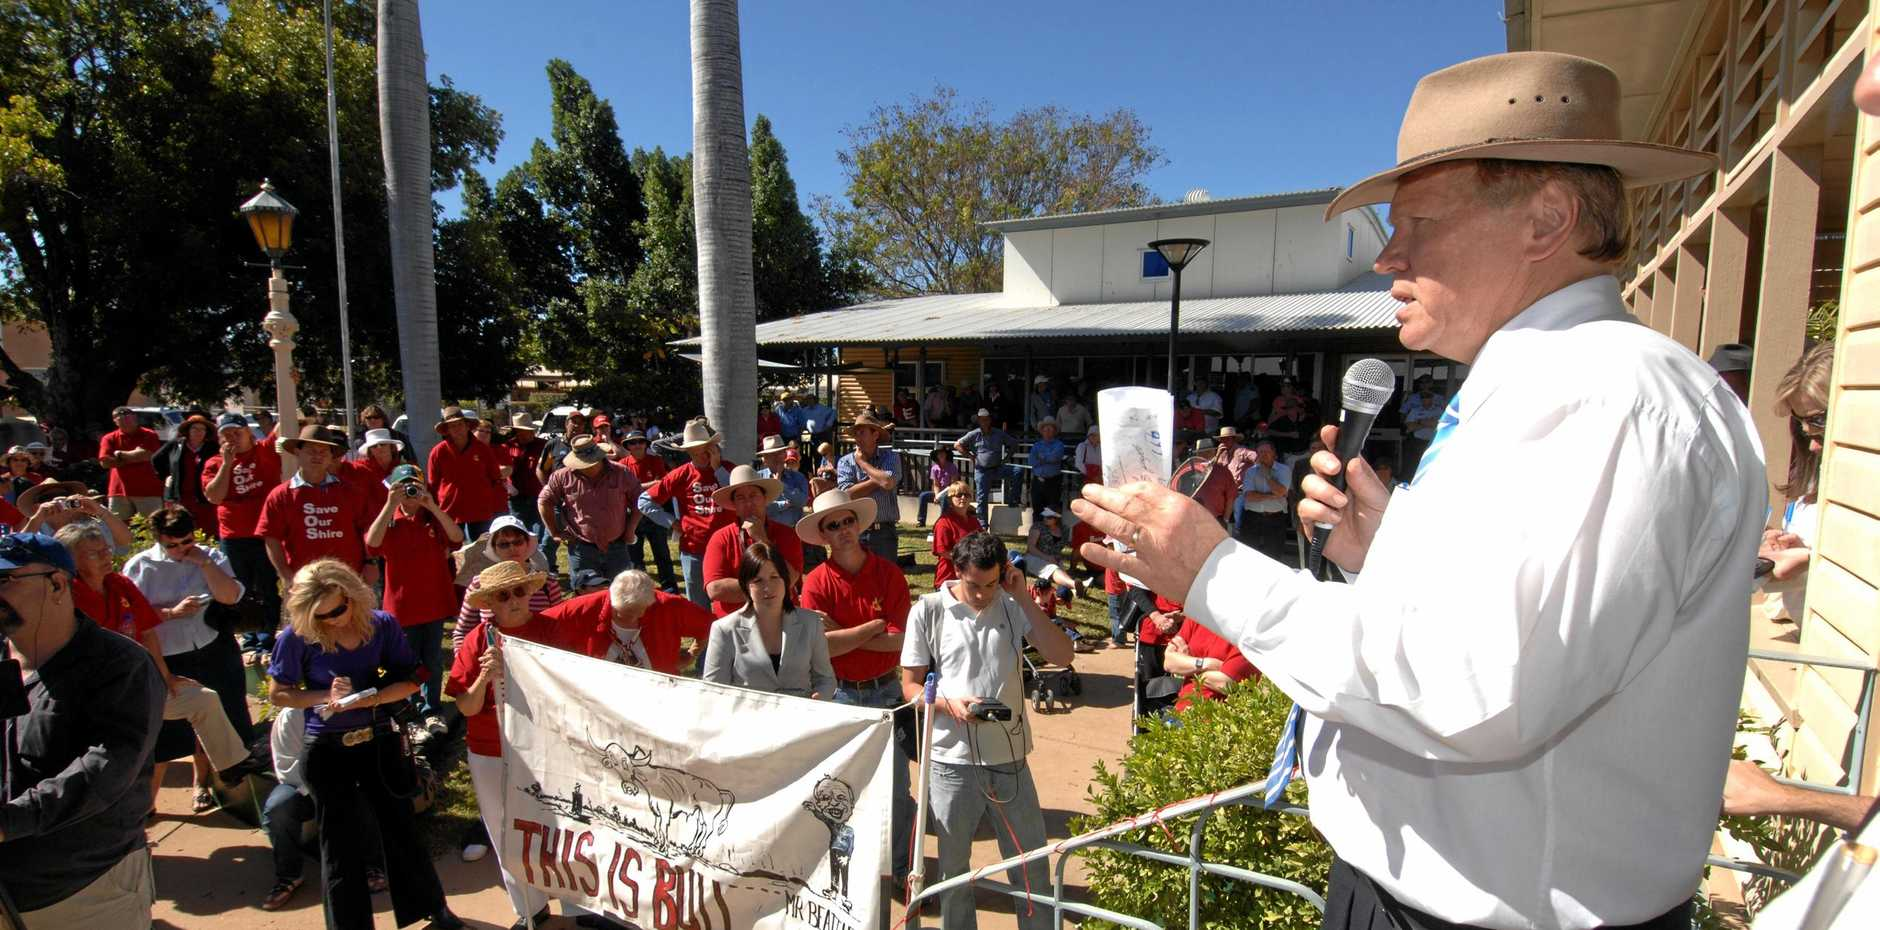 Queensland Premier Peter Beattie confronts protesters against council amalgamation outside the shire council in Barcaldine.